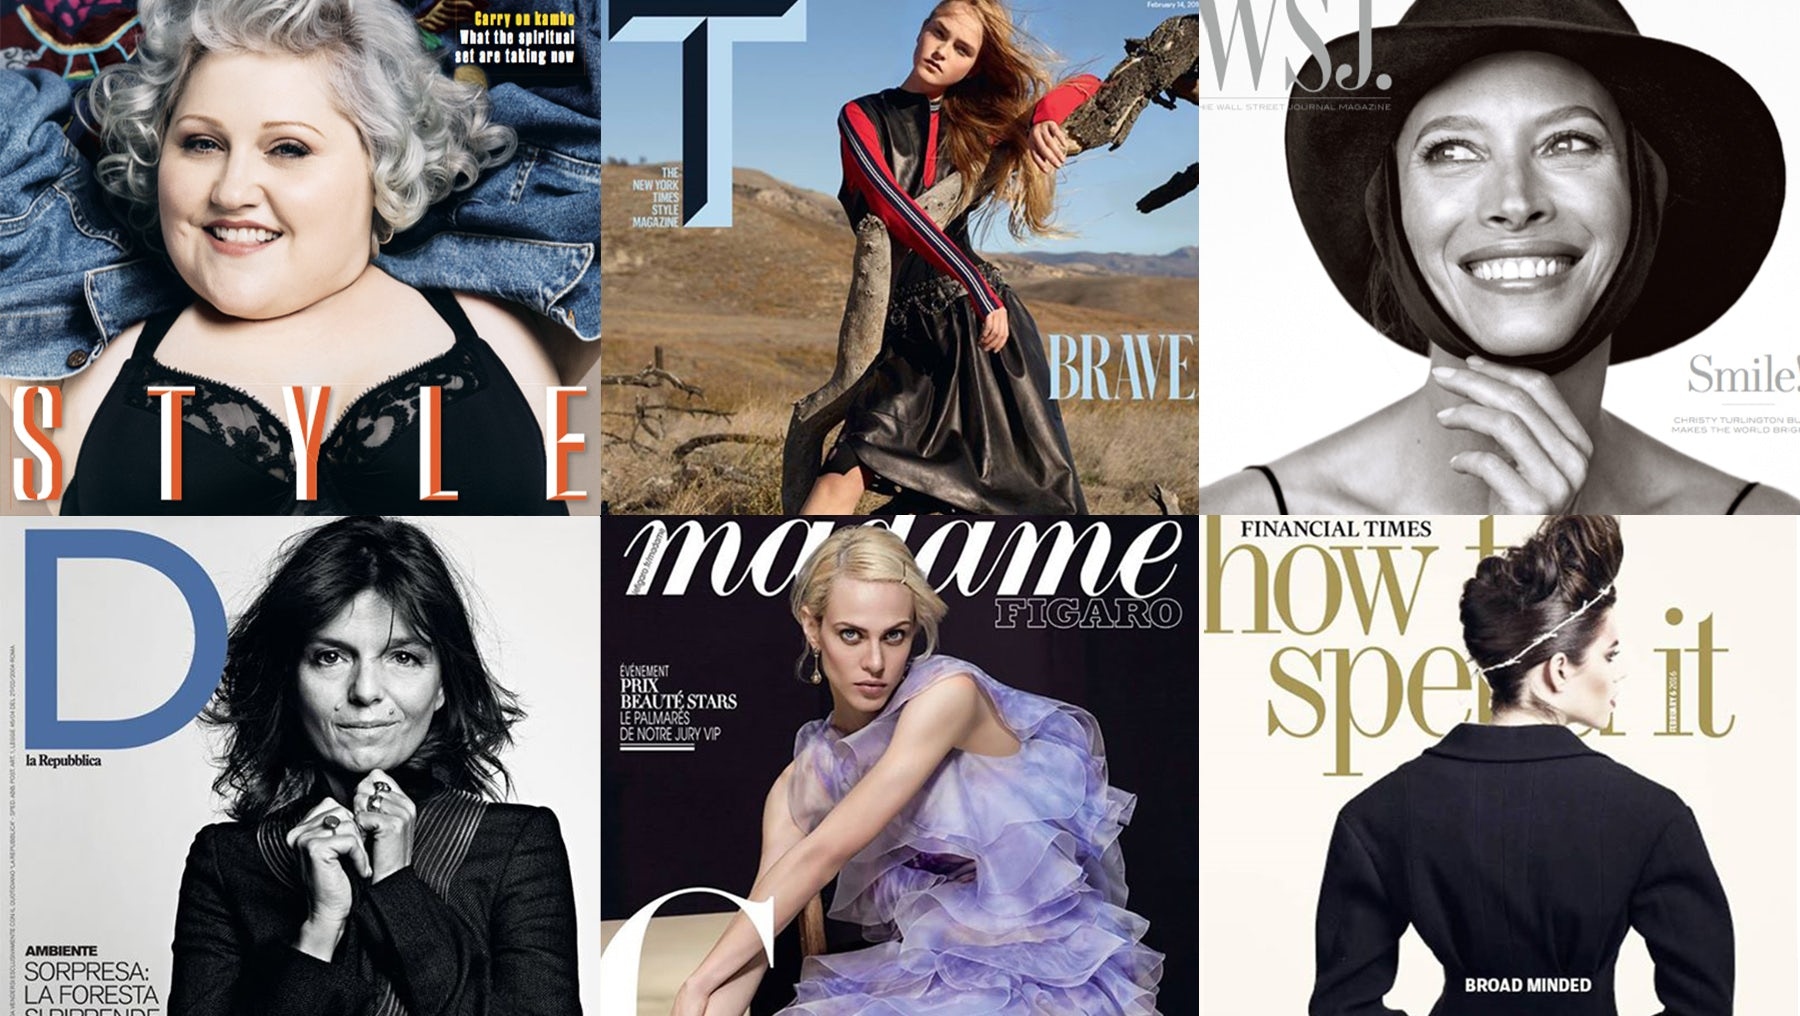 (Clockwise from top left) The Sunday Times' Style, T: The New York Times Style Magazine, The Wall Street Journal's WSJ., The Financial Times' How To Spend It, Le Figaro's Madame Figaro, La Repubblica's D | Photo: BoF